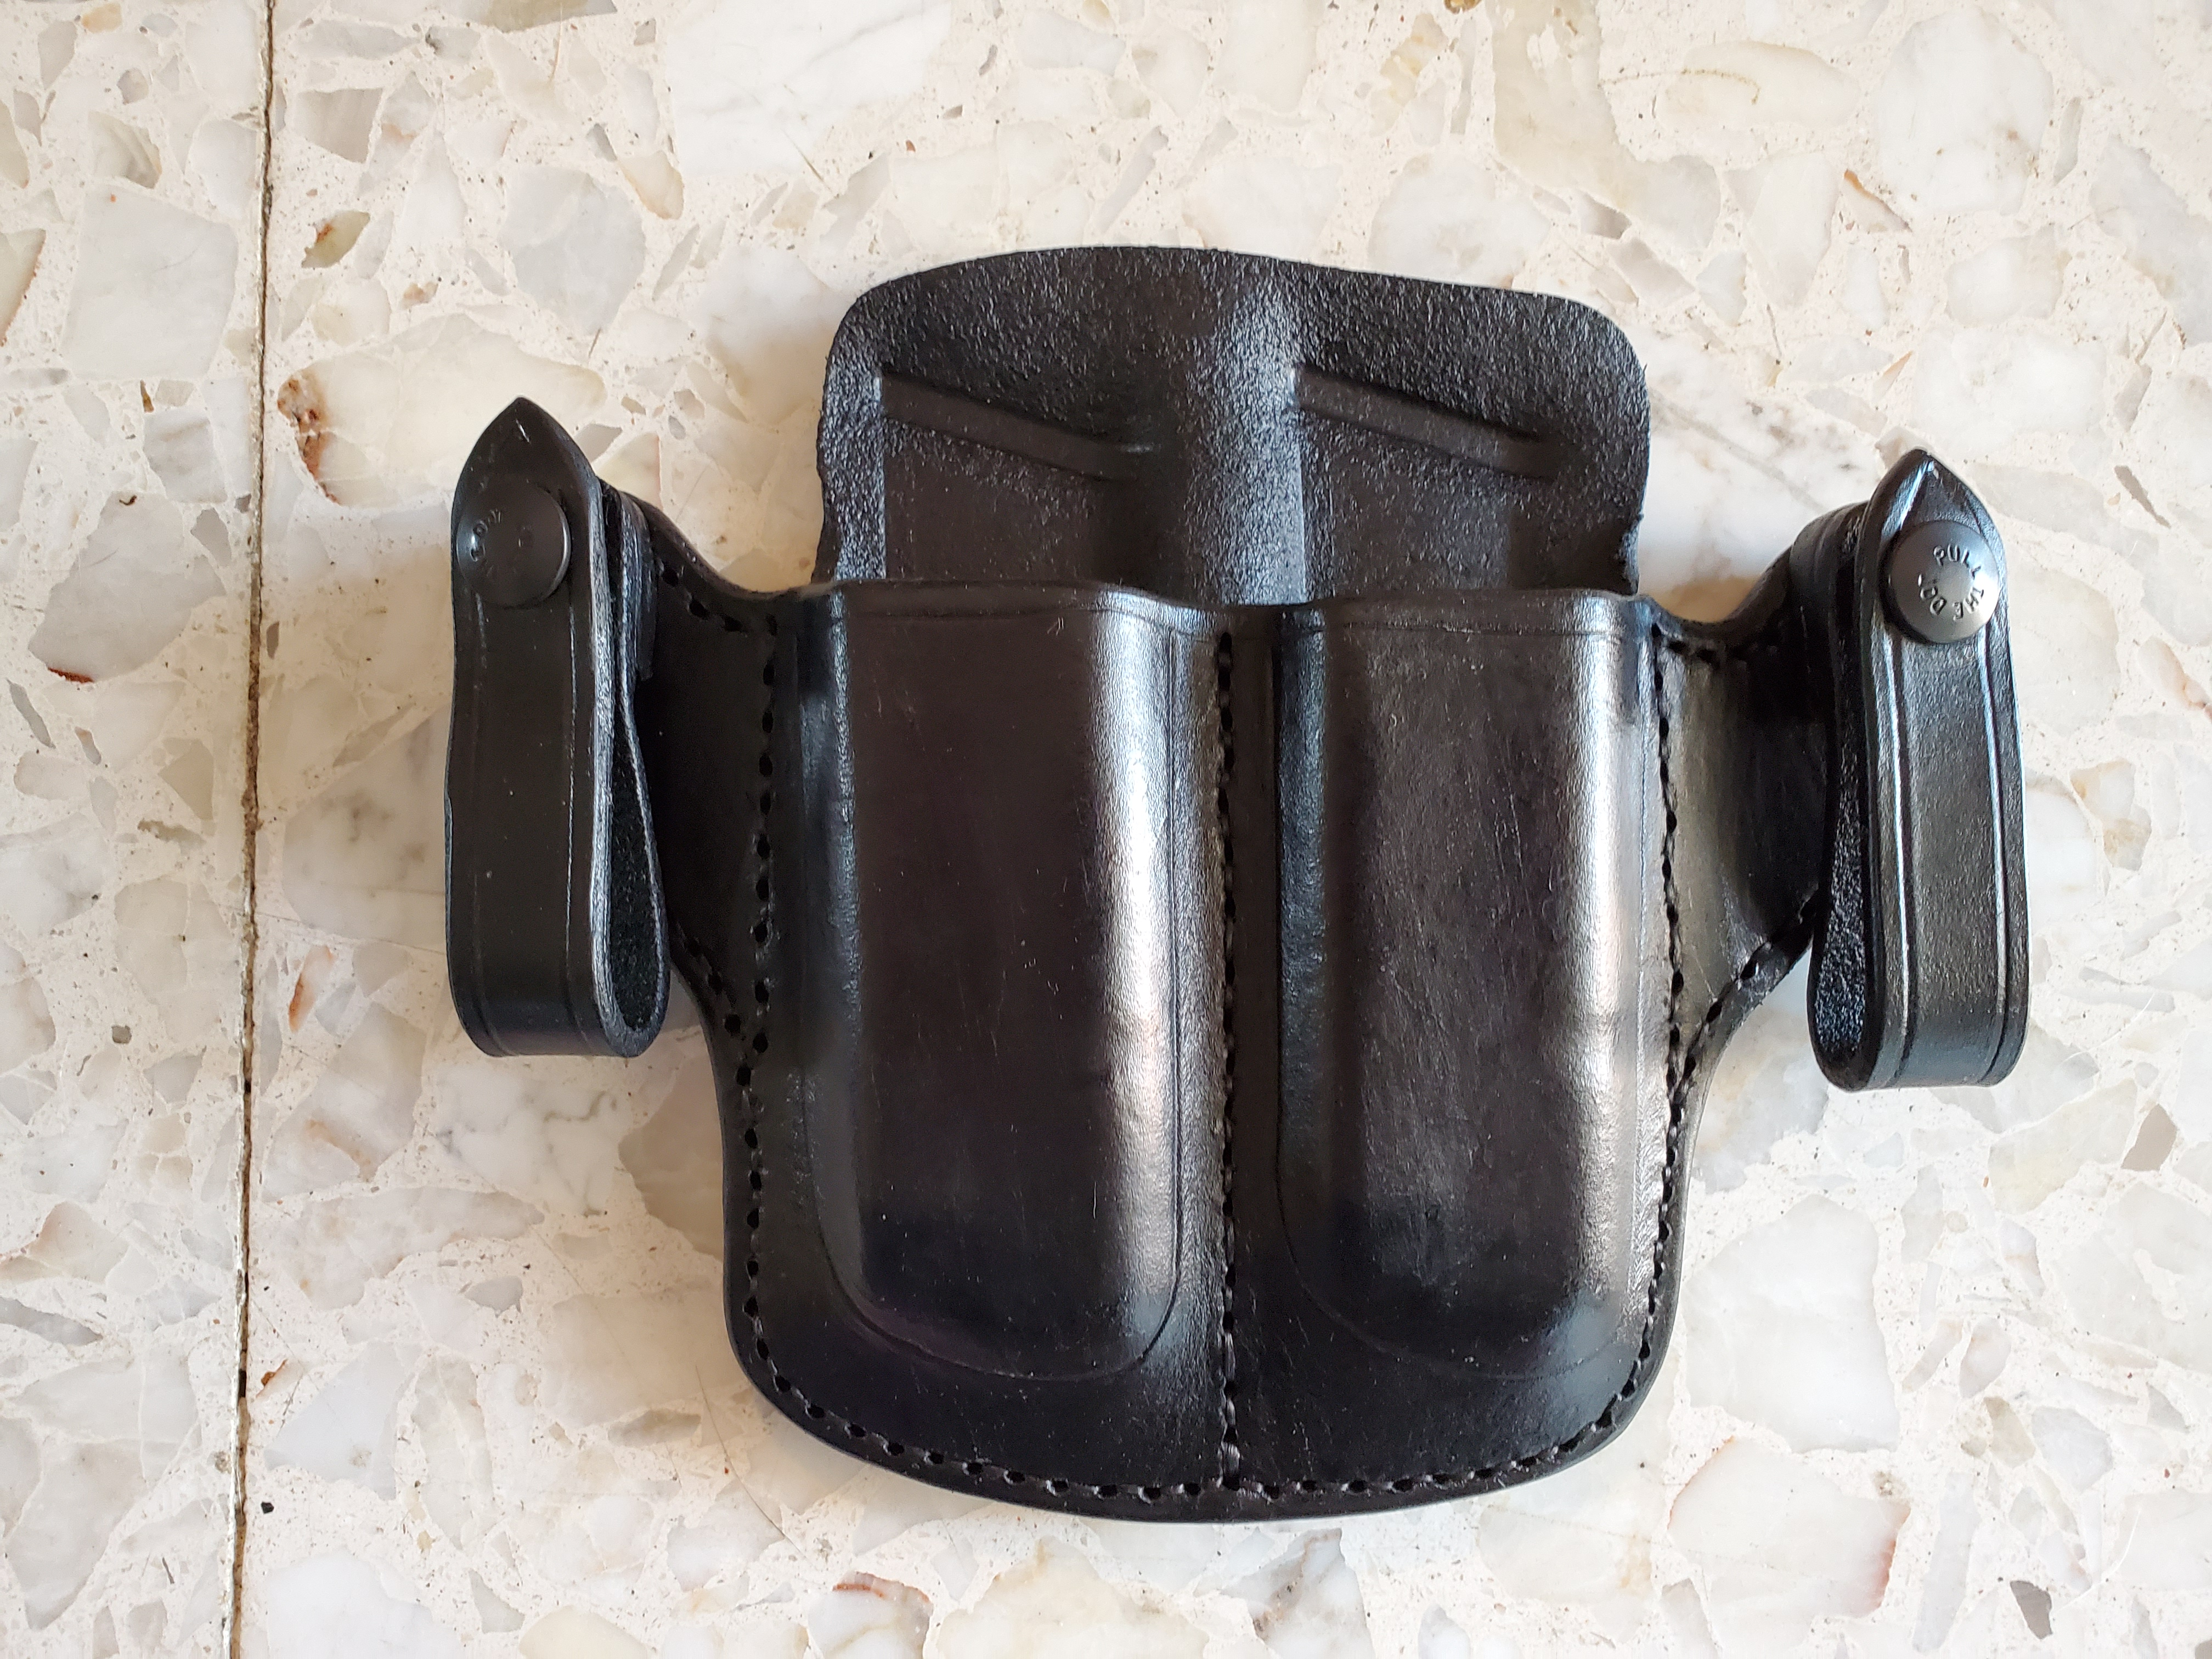 Selling New Nelson Holsters- 10% off Retail and No Wait-20190508_171055.jpg